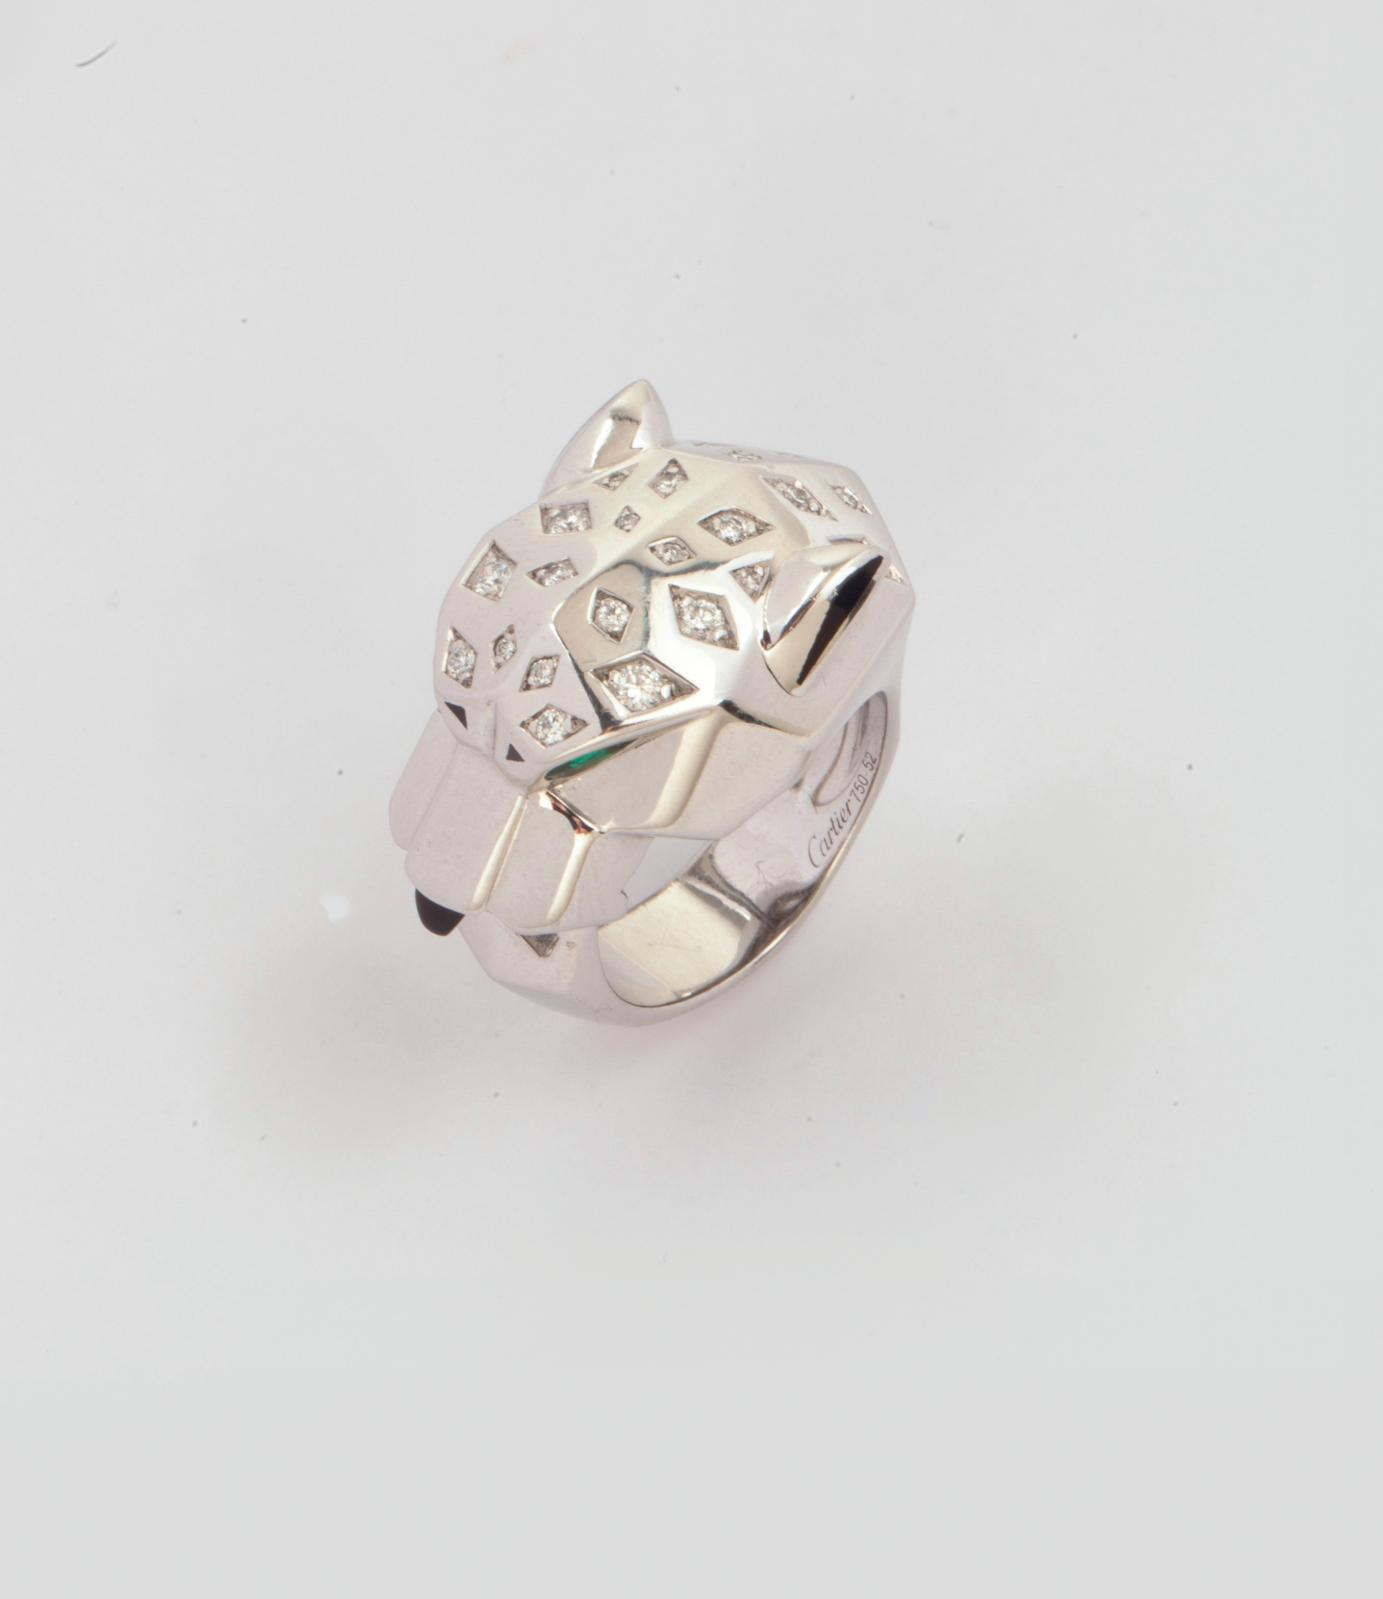 €12,544Cartier, white gold ring based on the panther motif created under Jeanne Toussaint (1887-1976), featuring a panther's head, diamond